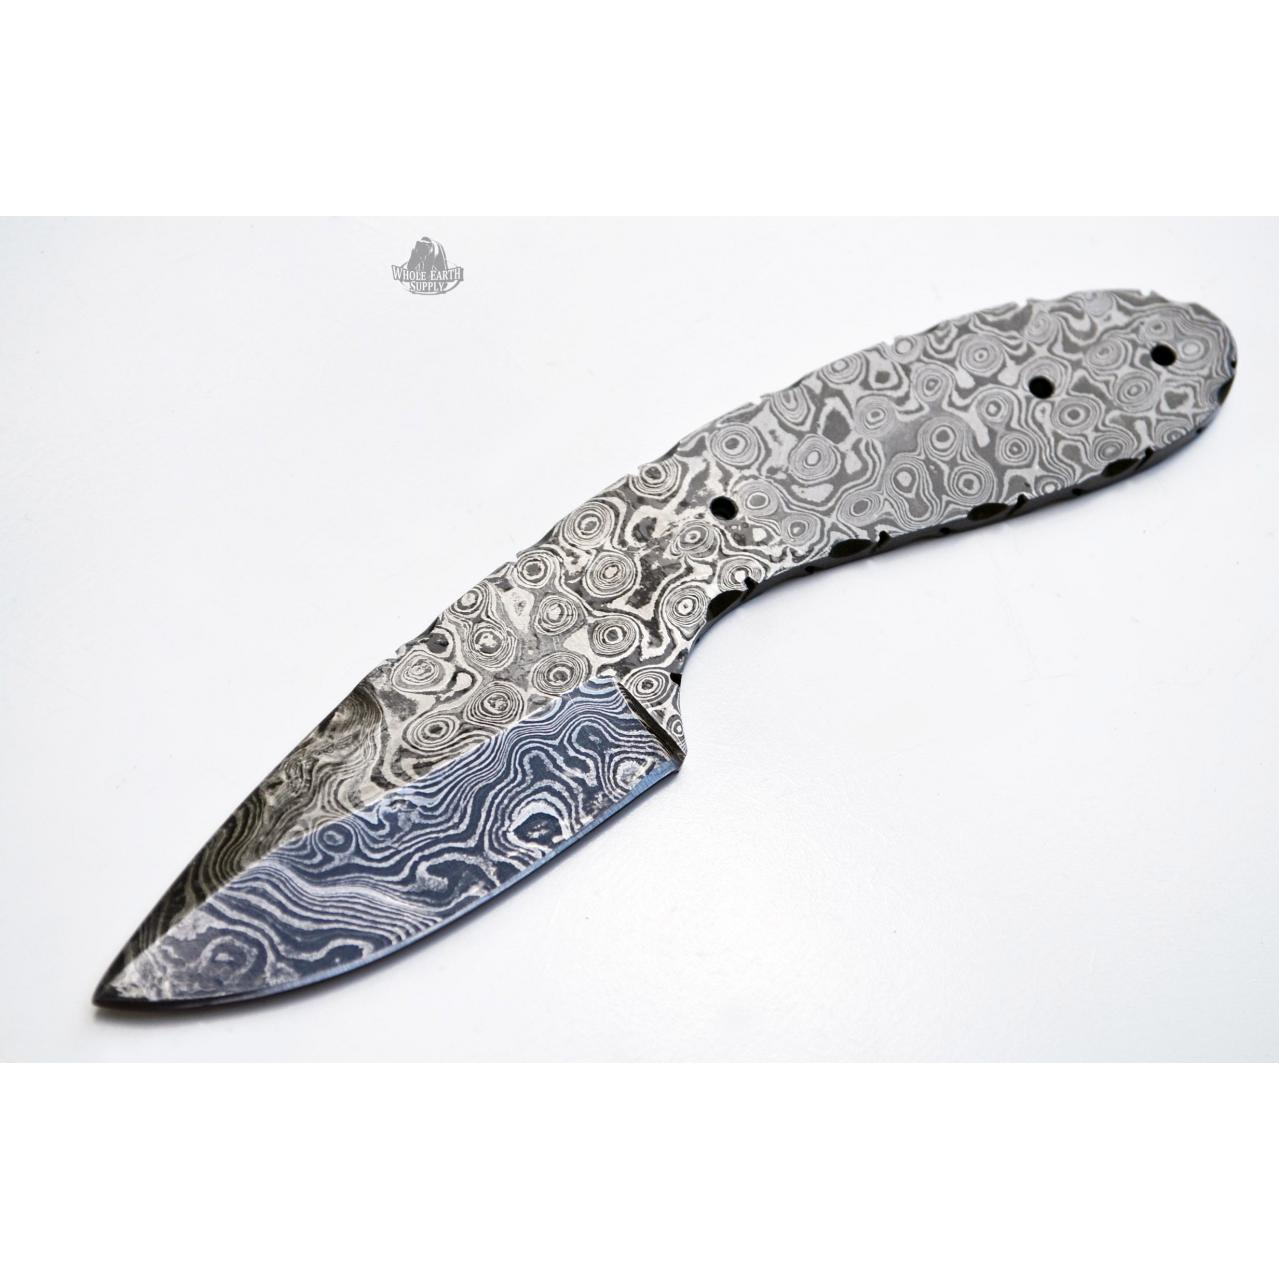 Quality Damascus Hunting Blanks Model: H-BLANK-60 for sale